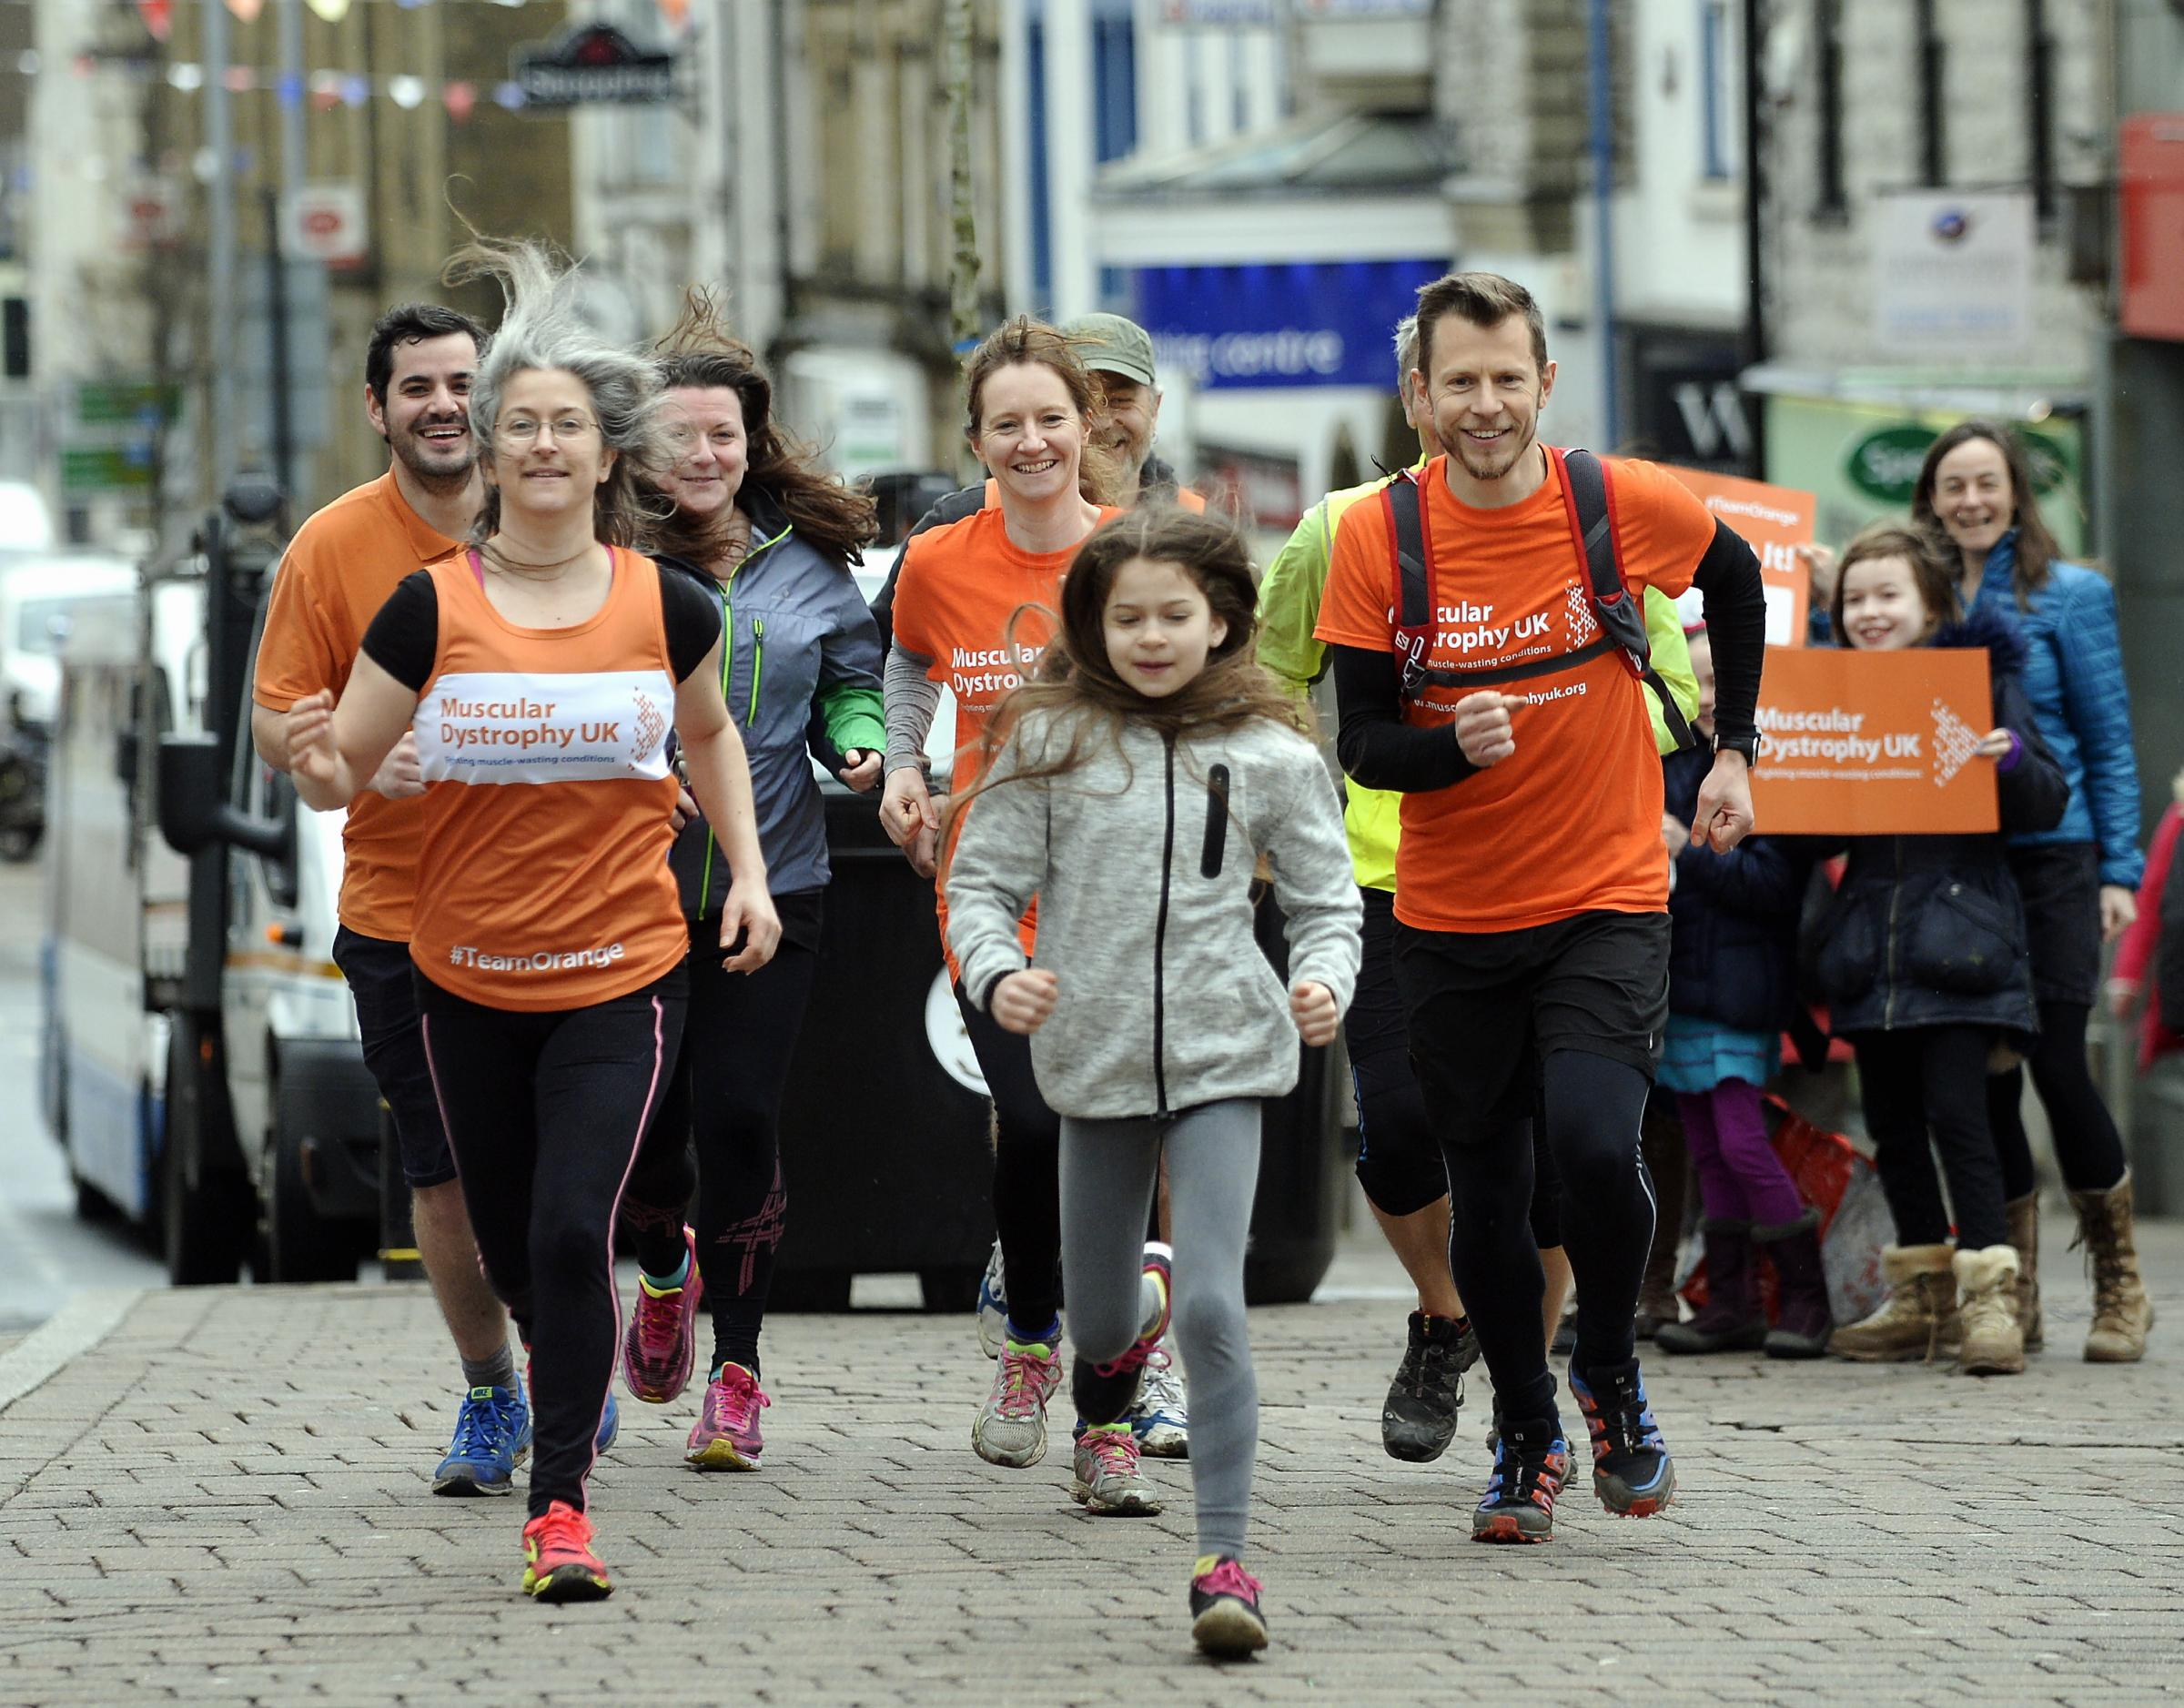 Simon Blunden of Kendal pictured (right) with friends running to raise money for Muscular Dystrophy UK...10/04/2018..JON GRANGER.